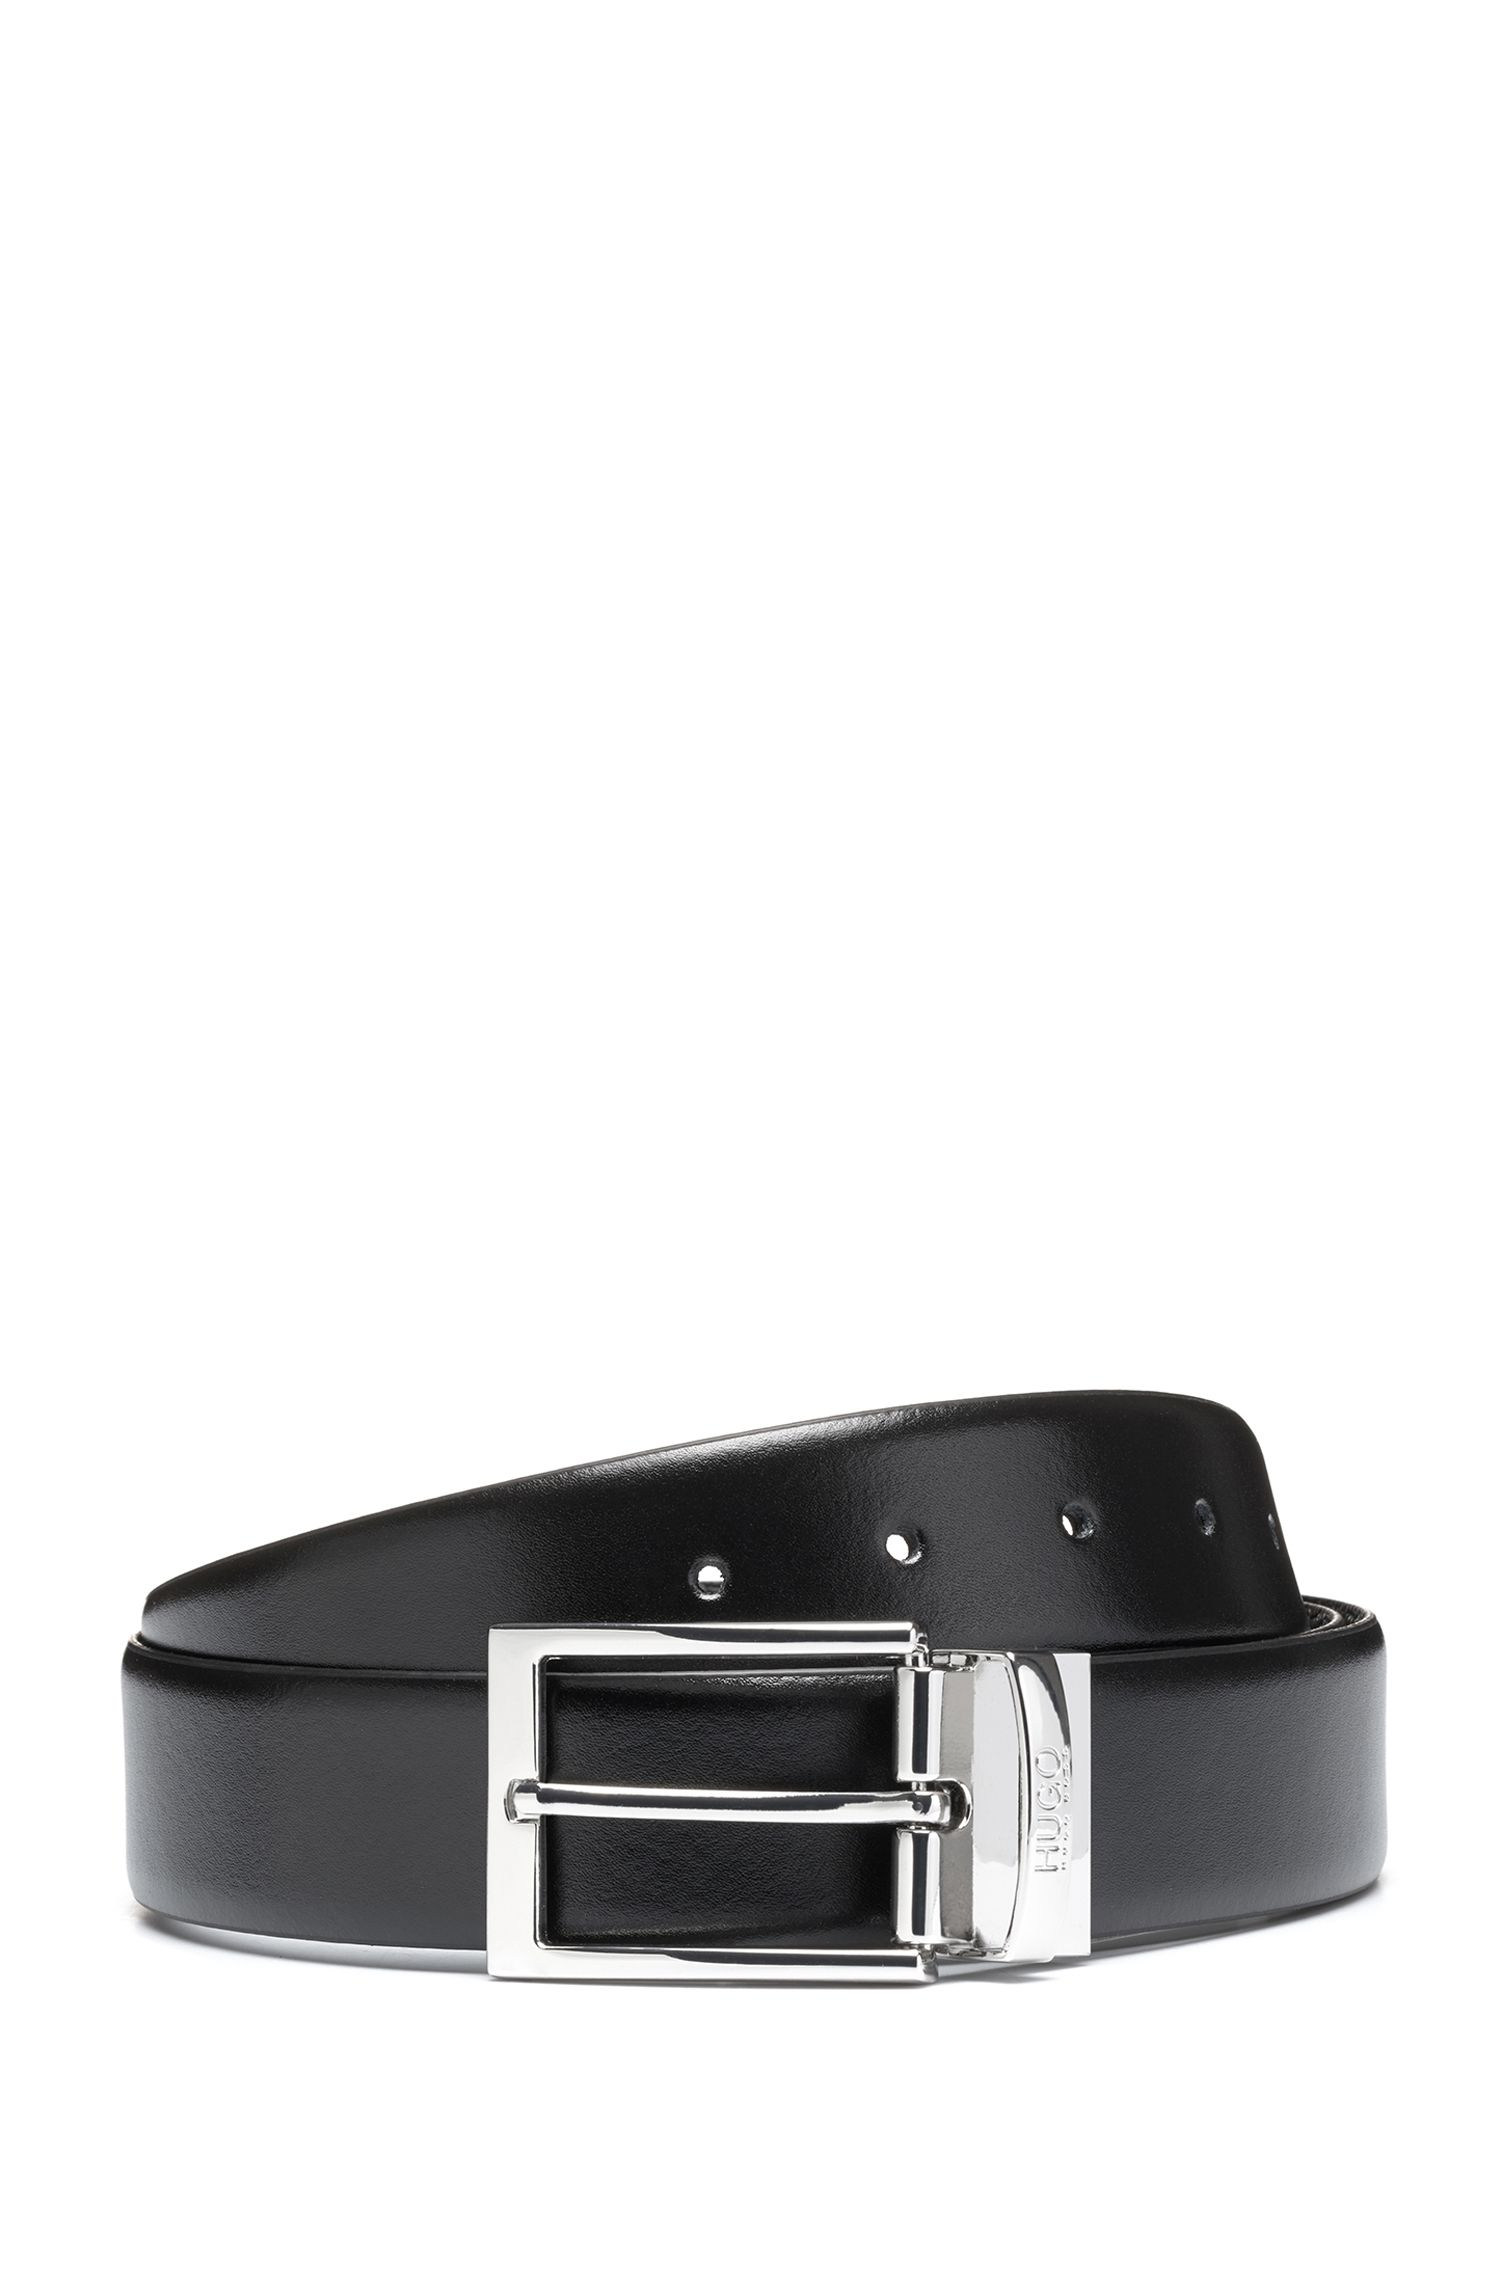 Reversible leather belt with contrast textures